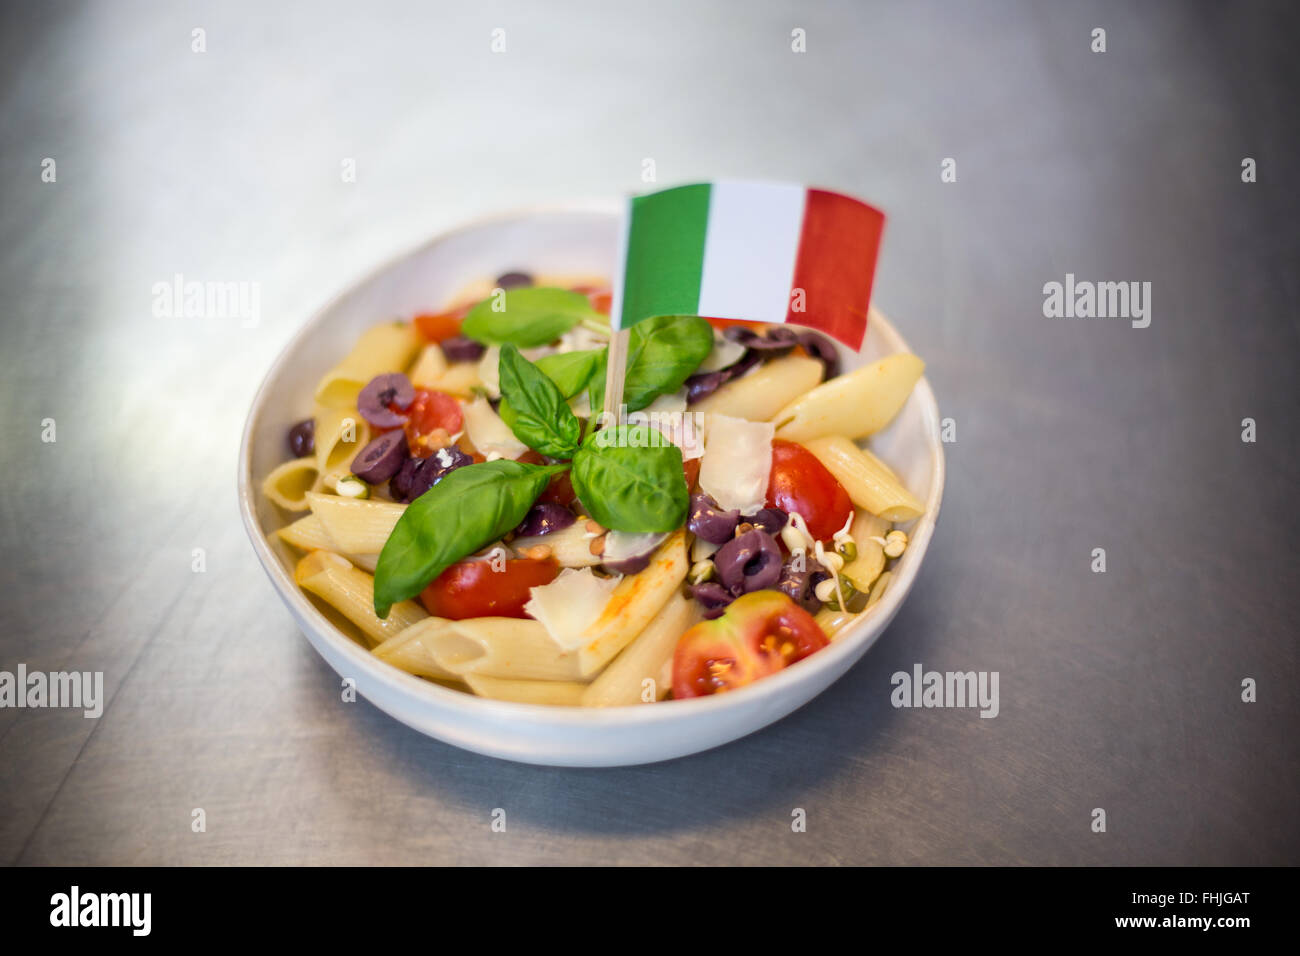 Bowl of pasta with italian flag - Stock Image